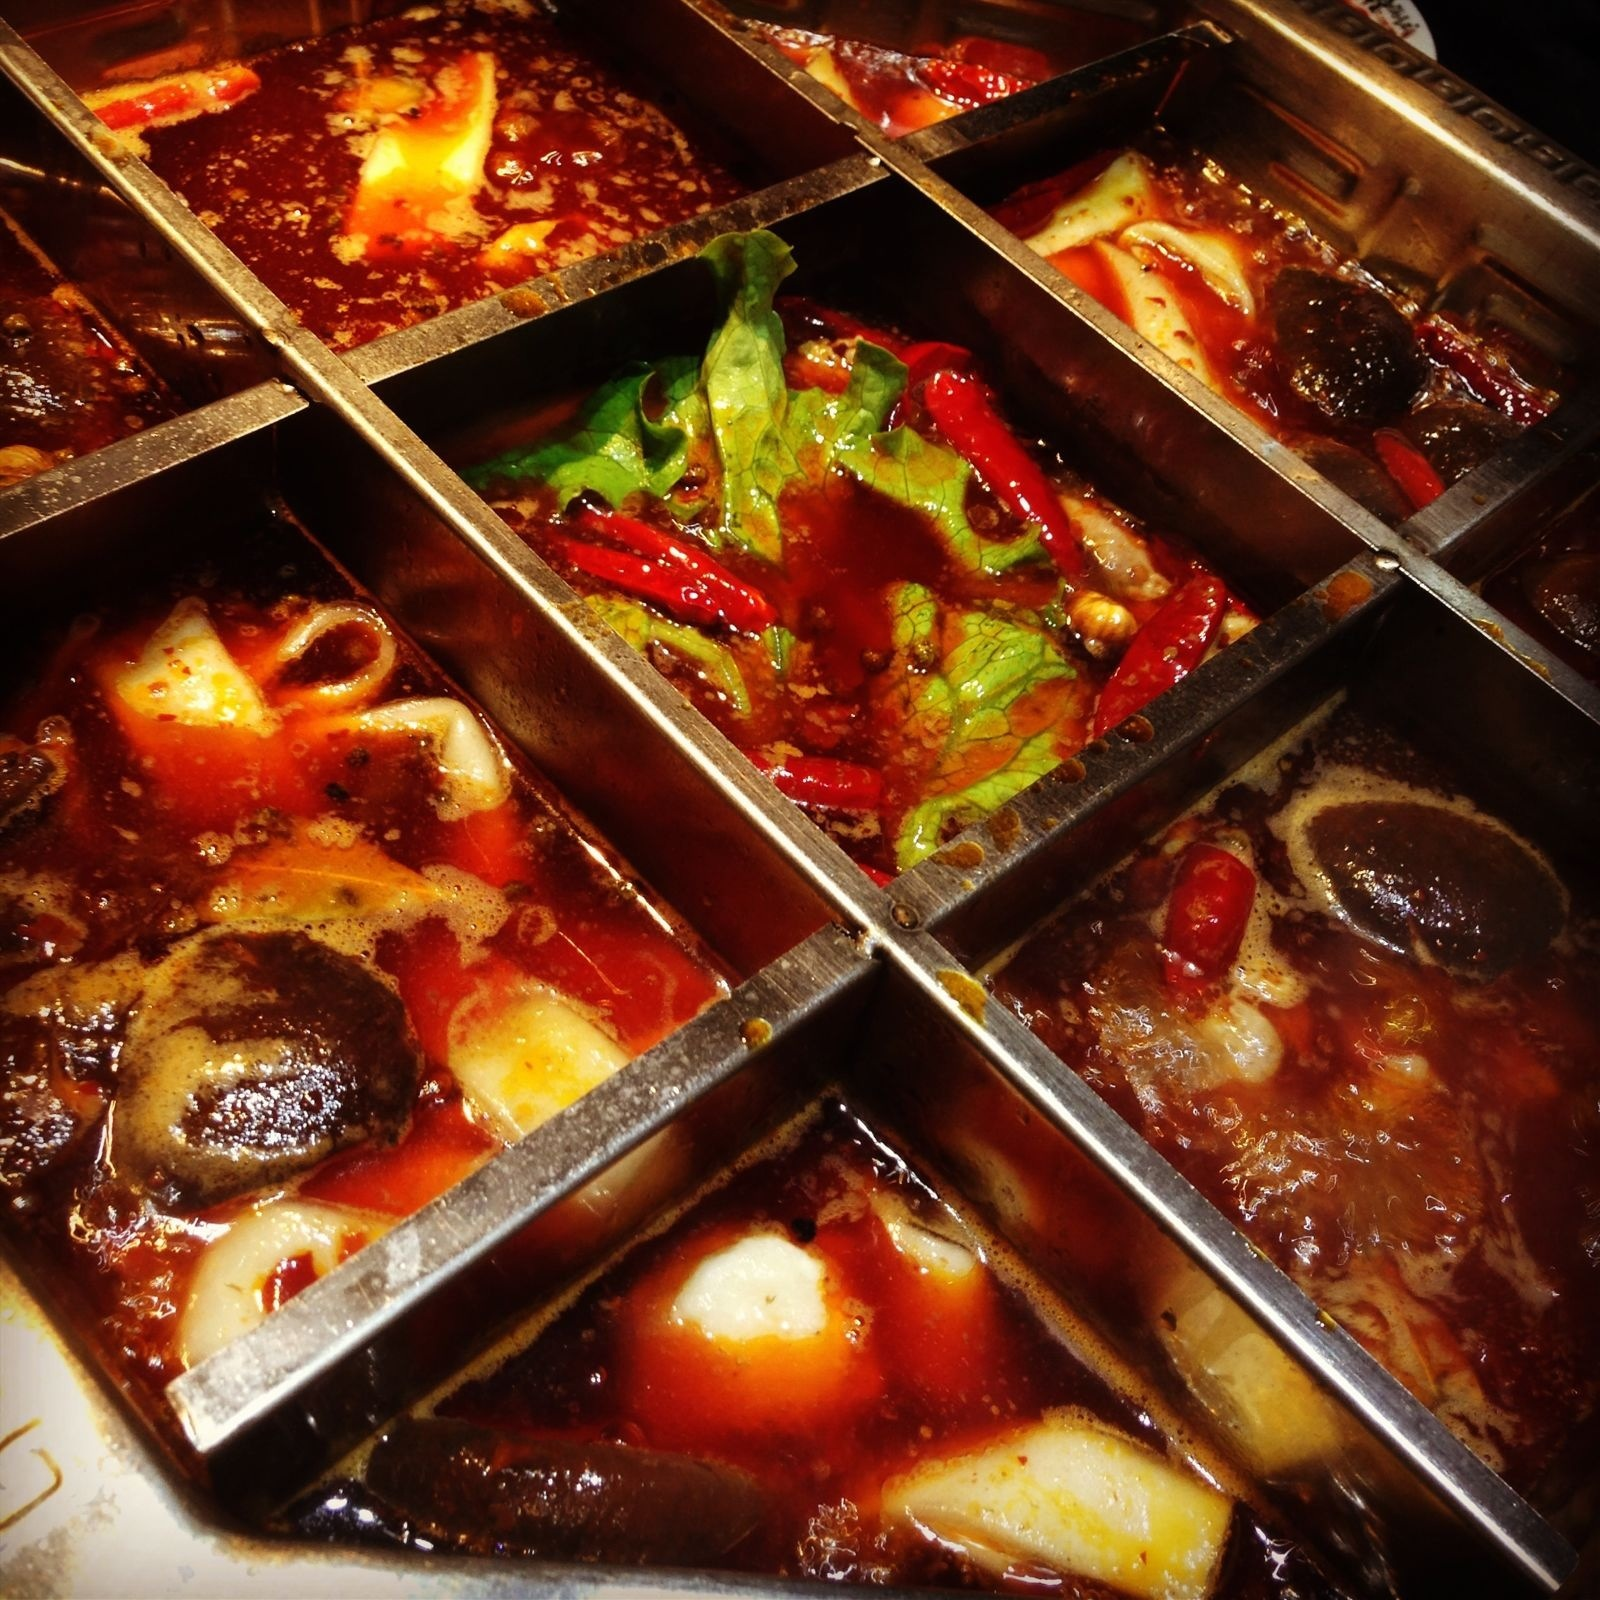 Cuisines With Spicy Food Enjoy The Hot Spicy Food In China Easy Tour China